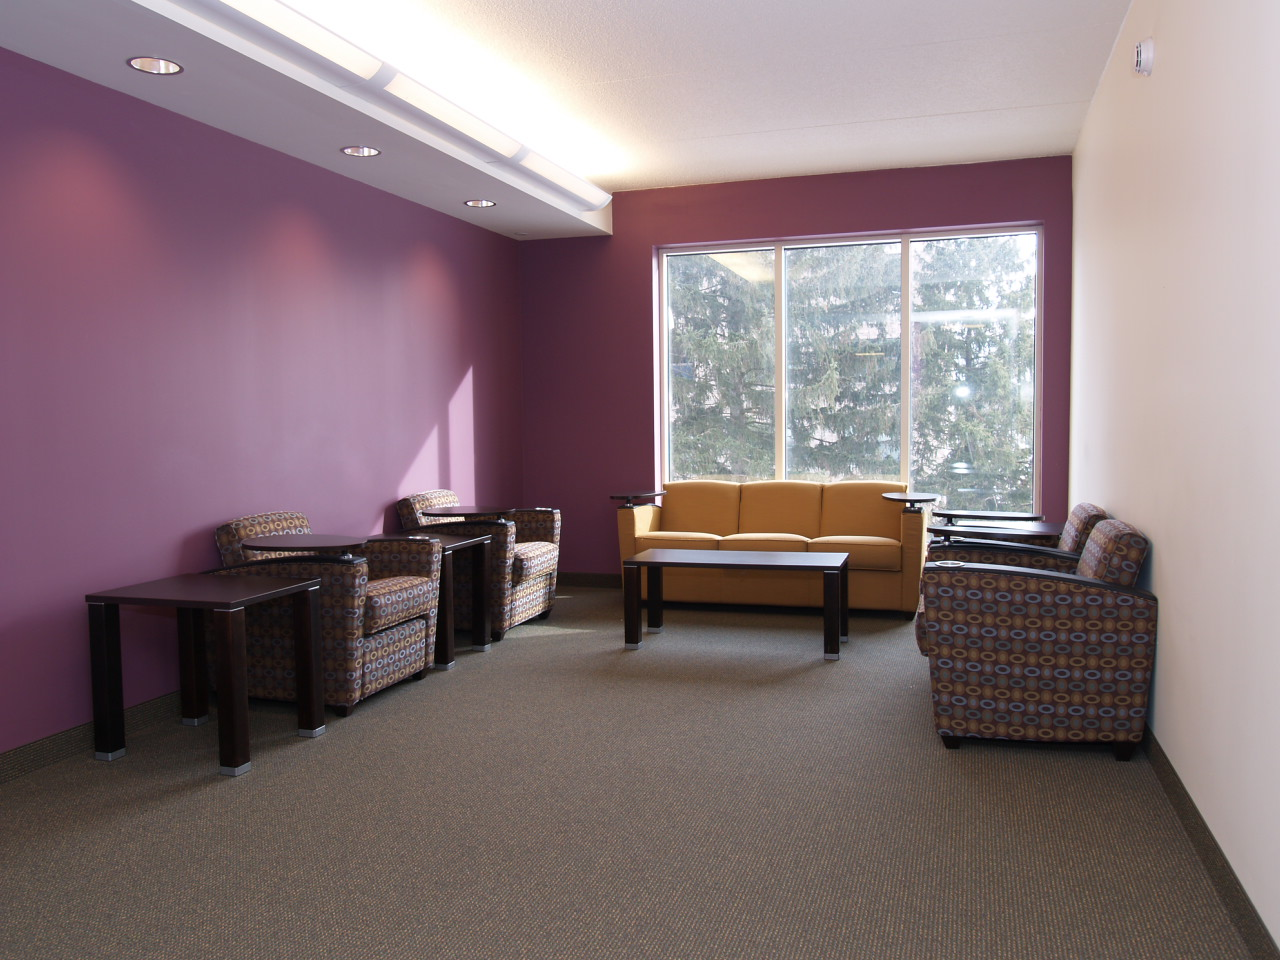 West chester virtual tour student housing west chester university